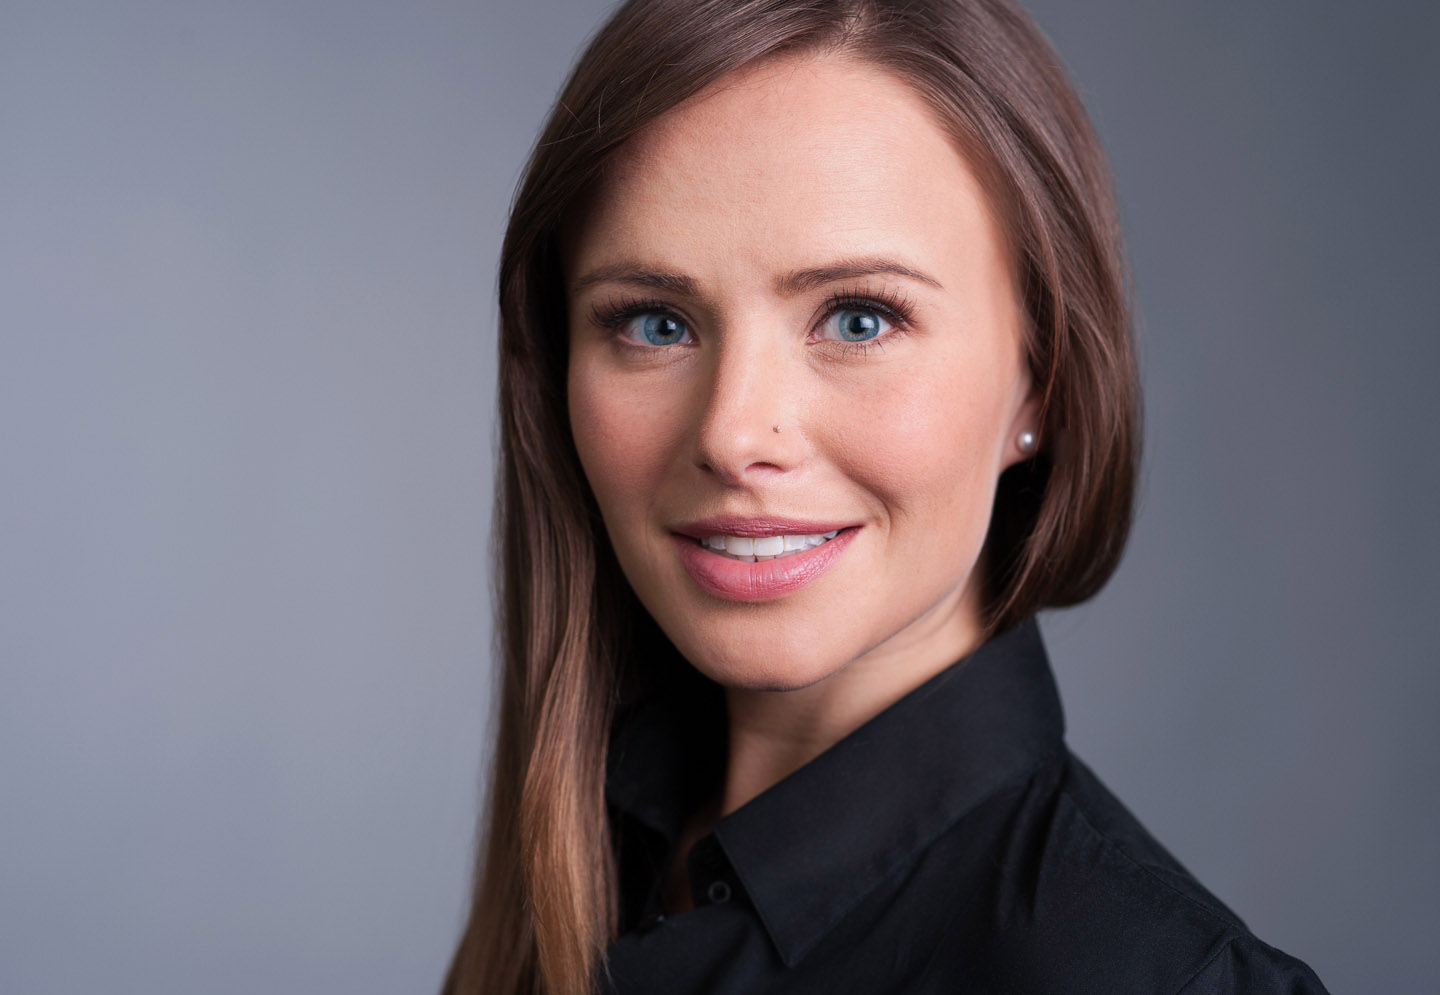 Photo of a woman from Calgary headshot sessions photographed by Brett Gilmour